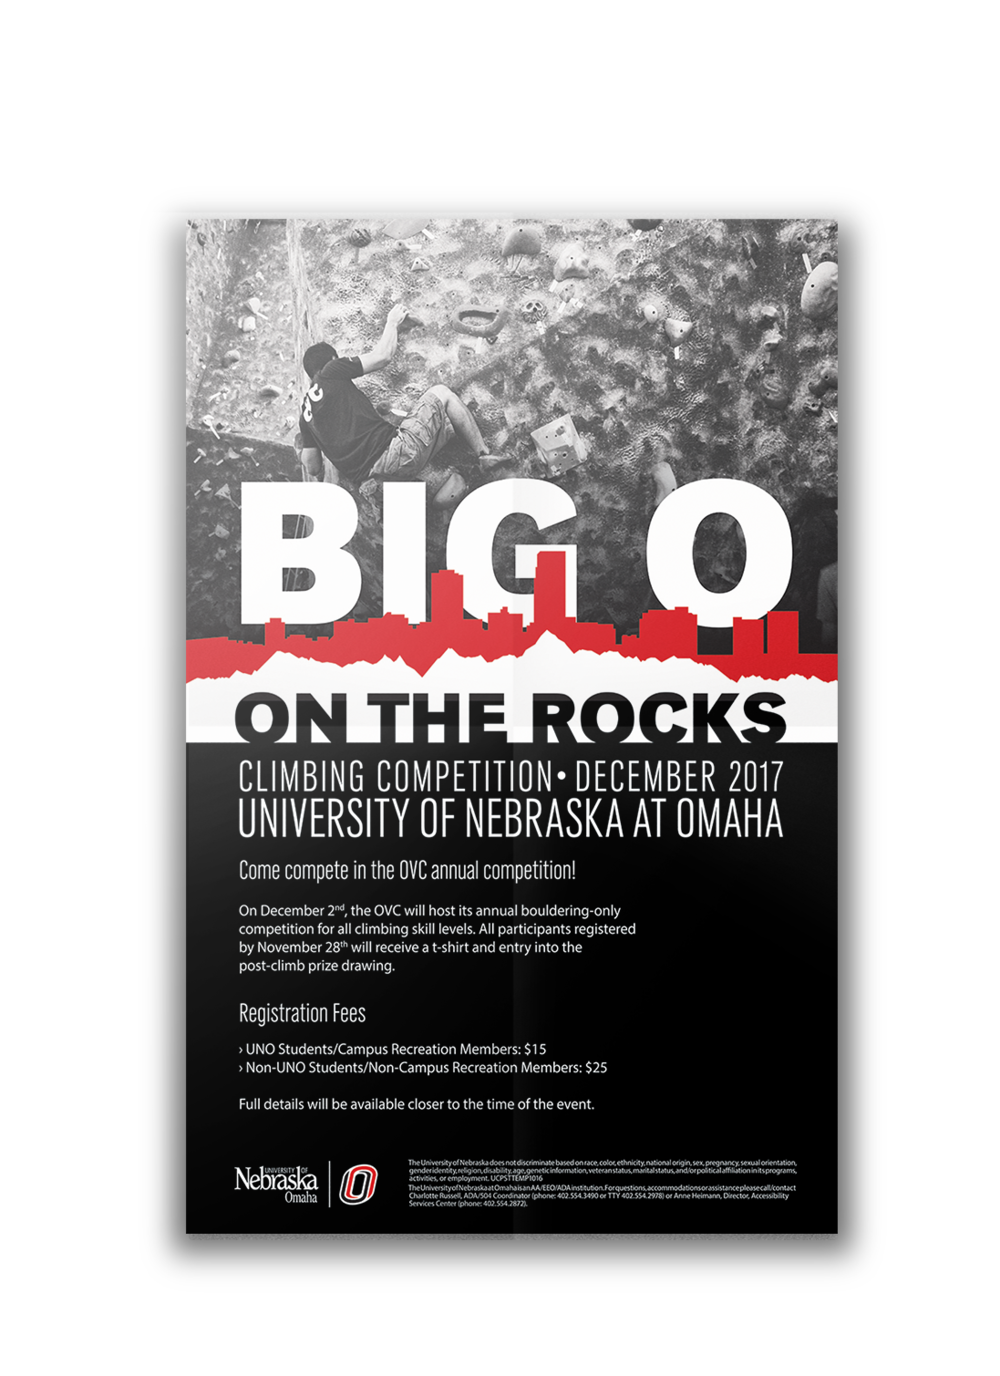 Big o on the rocks - A Poster for the rock climbing event at the University of Nebraska at Omaha.